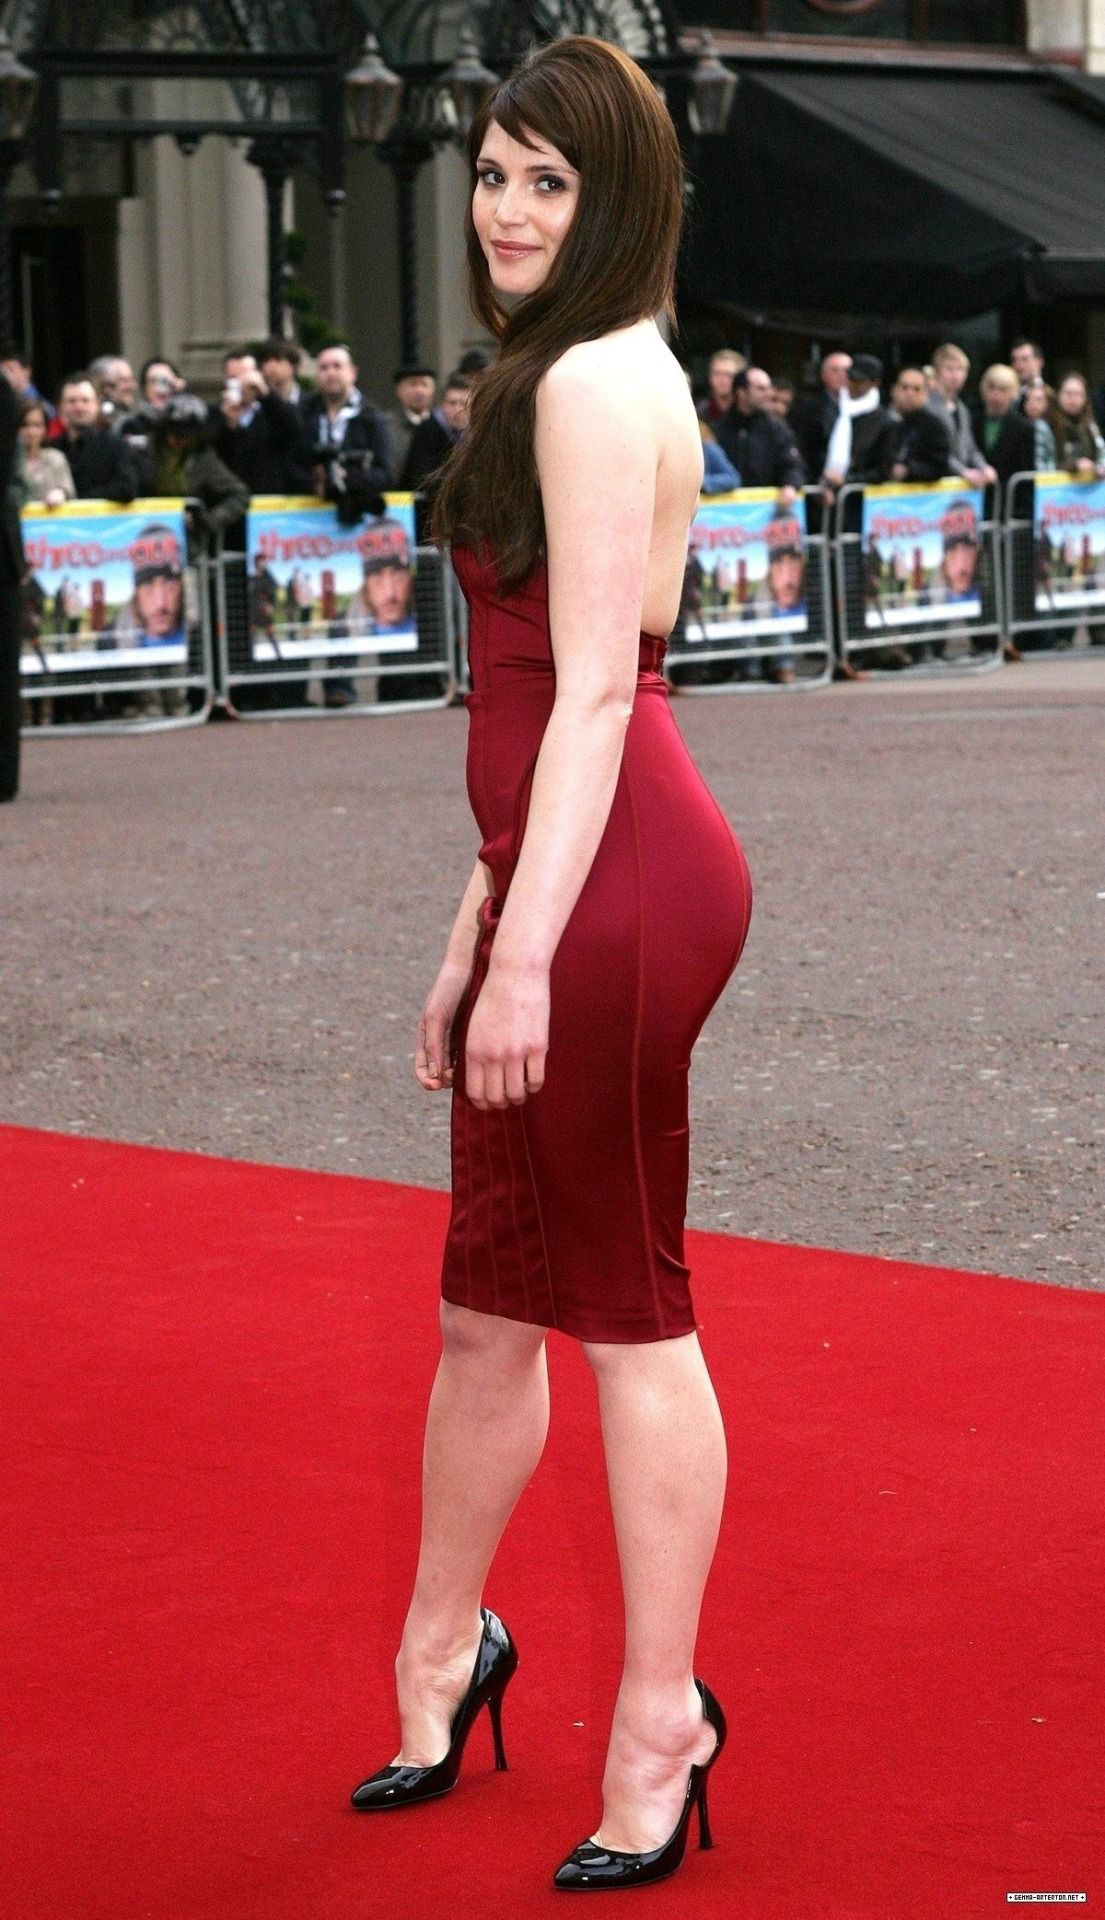 gemma arterton ass